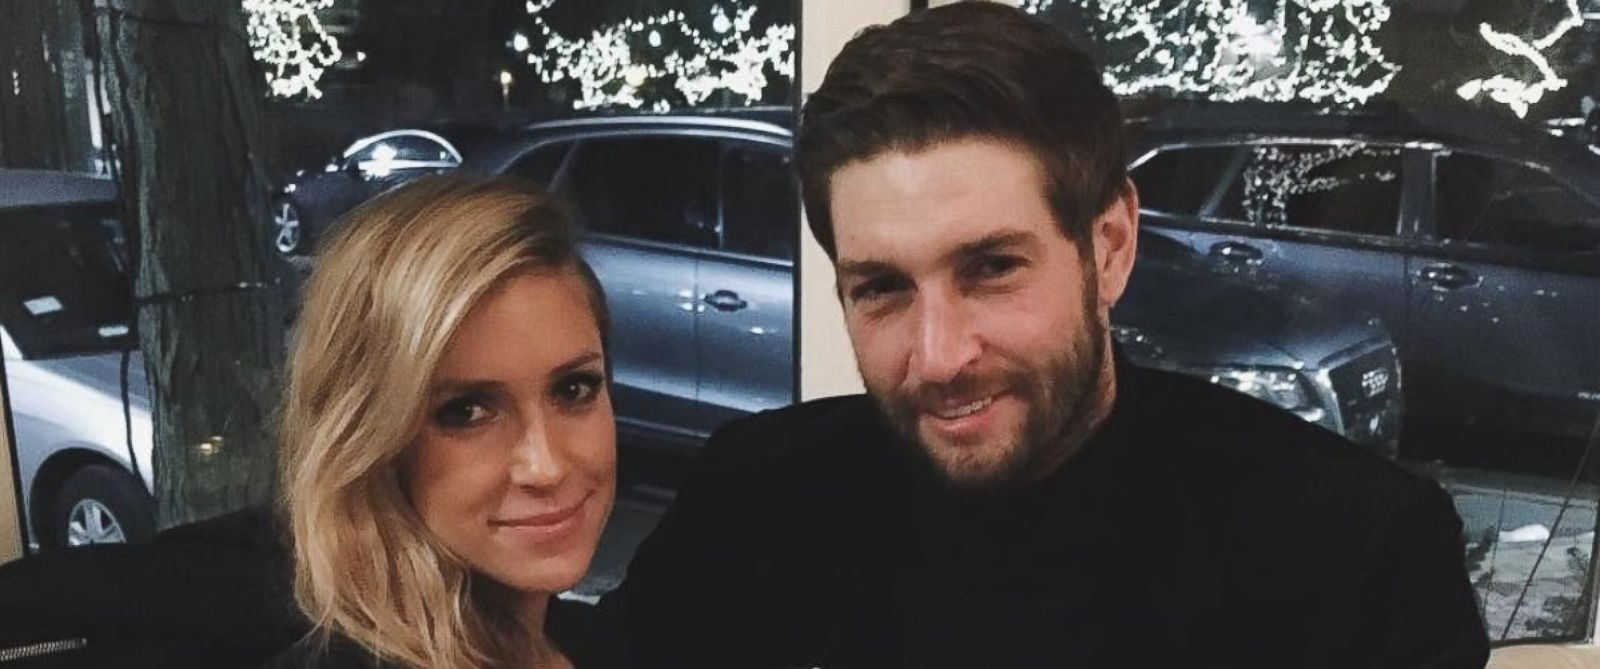 "PHOTO: Kristin Cavallari posted this photo to her Instagram account with the caption: ""Last night was the second time Ive put makeup on in over 5 weeks and left the house (besides the grocery store and taking Cam to school),"" Jan. 1, 2016."